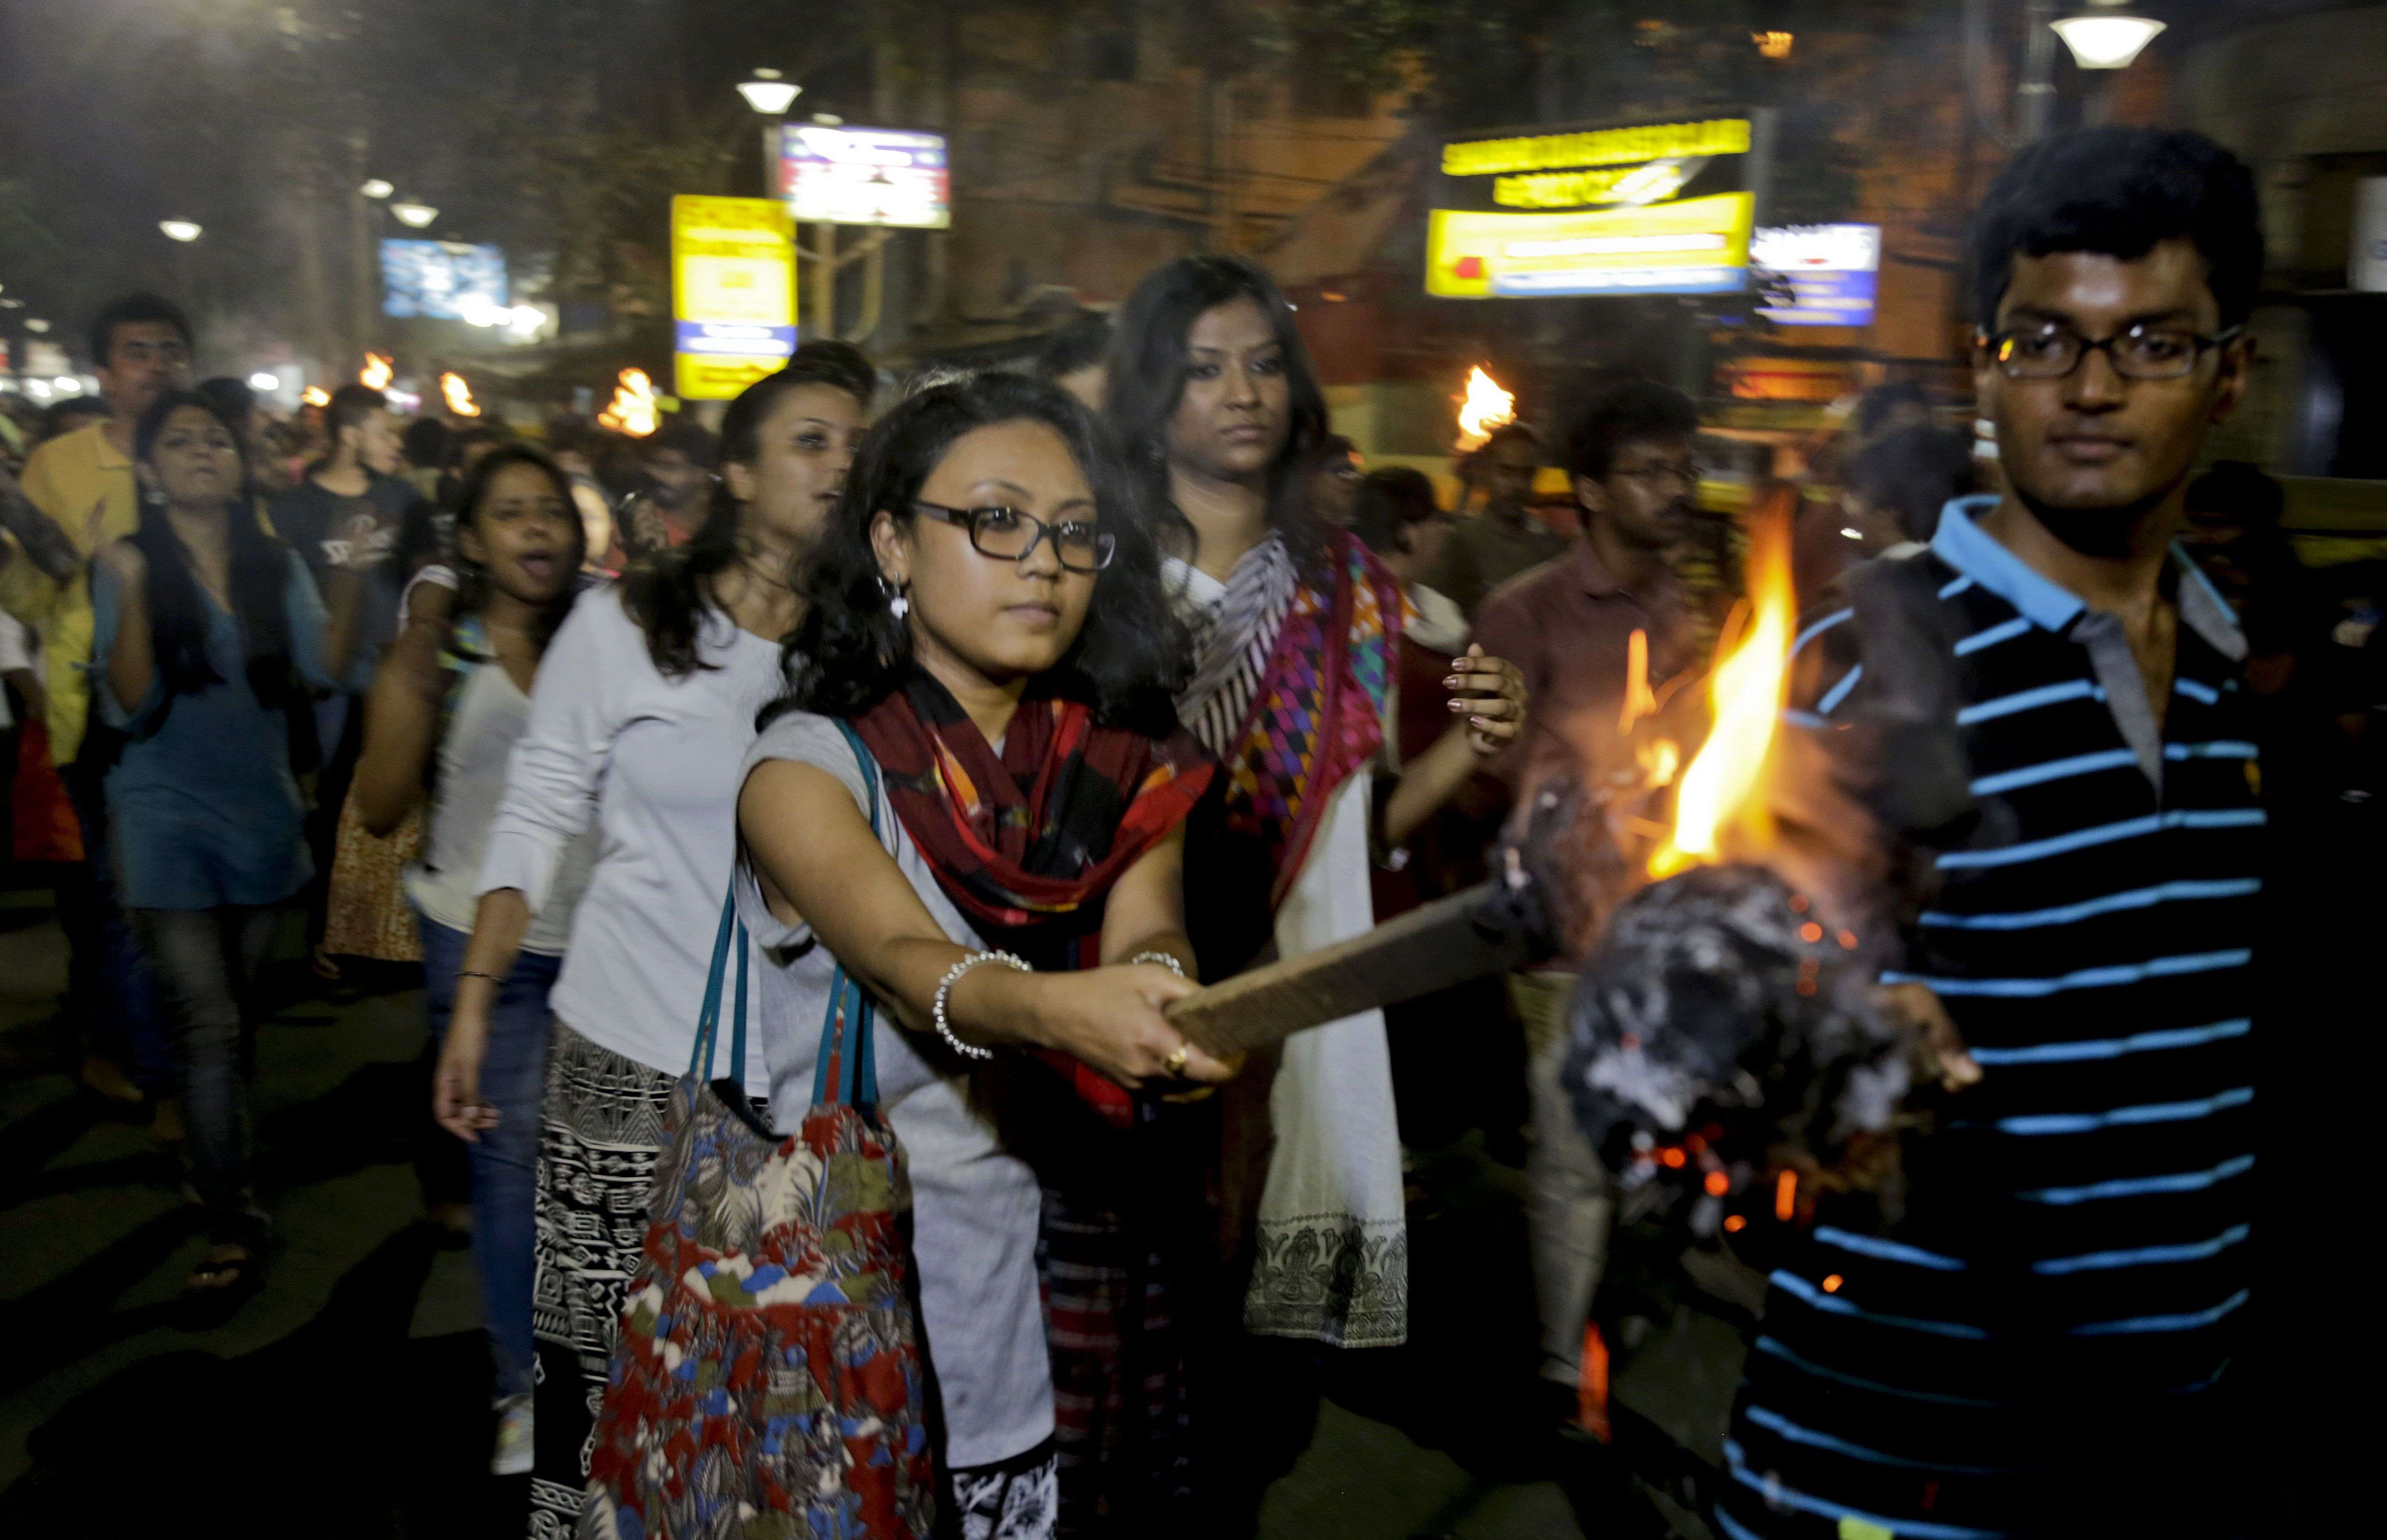 Students of Jadavpur University march in a torch light procession protesting against the arrest of a student union leader of New Delhi's Jawaharlal Nehru University in Kolkata. (Picture courtesy: AP Photo/ Bikas Das)